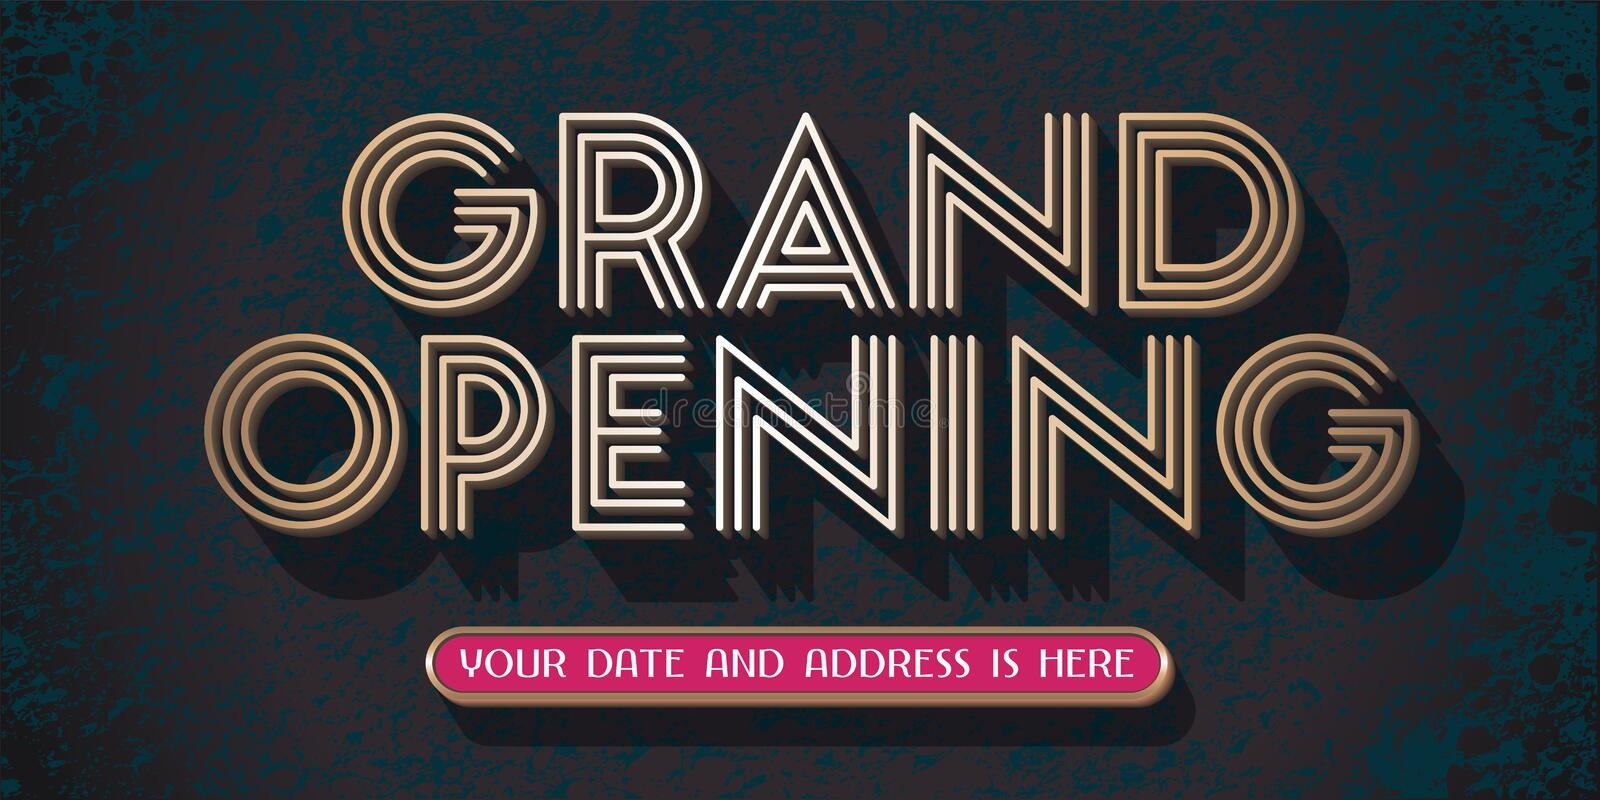 Grand opening vector banner, illustration. Template design element with golden sign for new store opening ceremony stock illustration